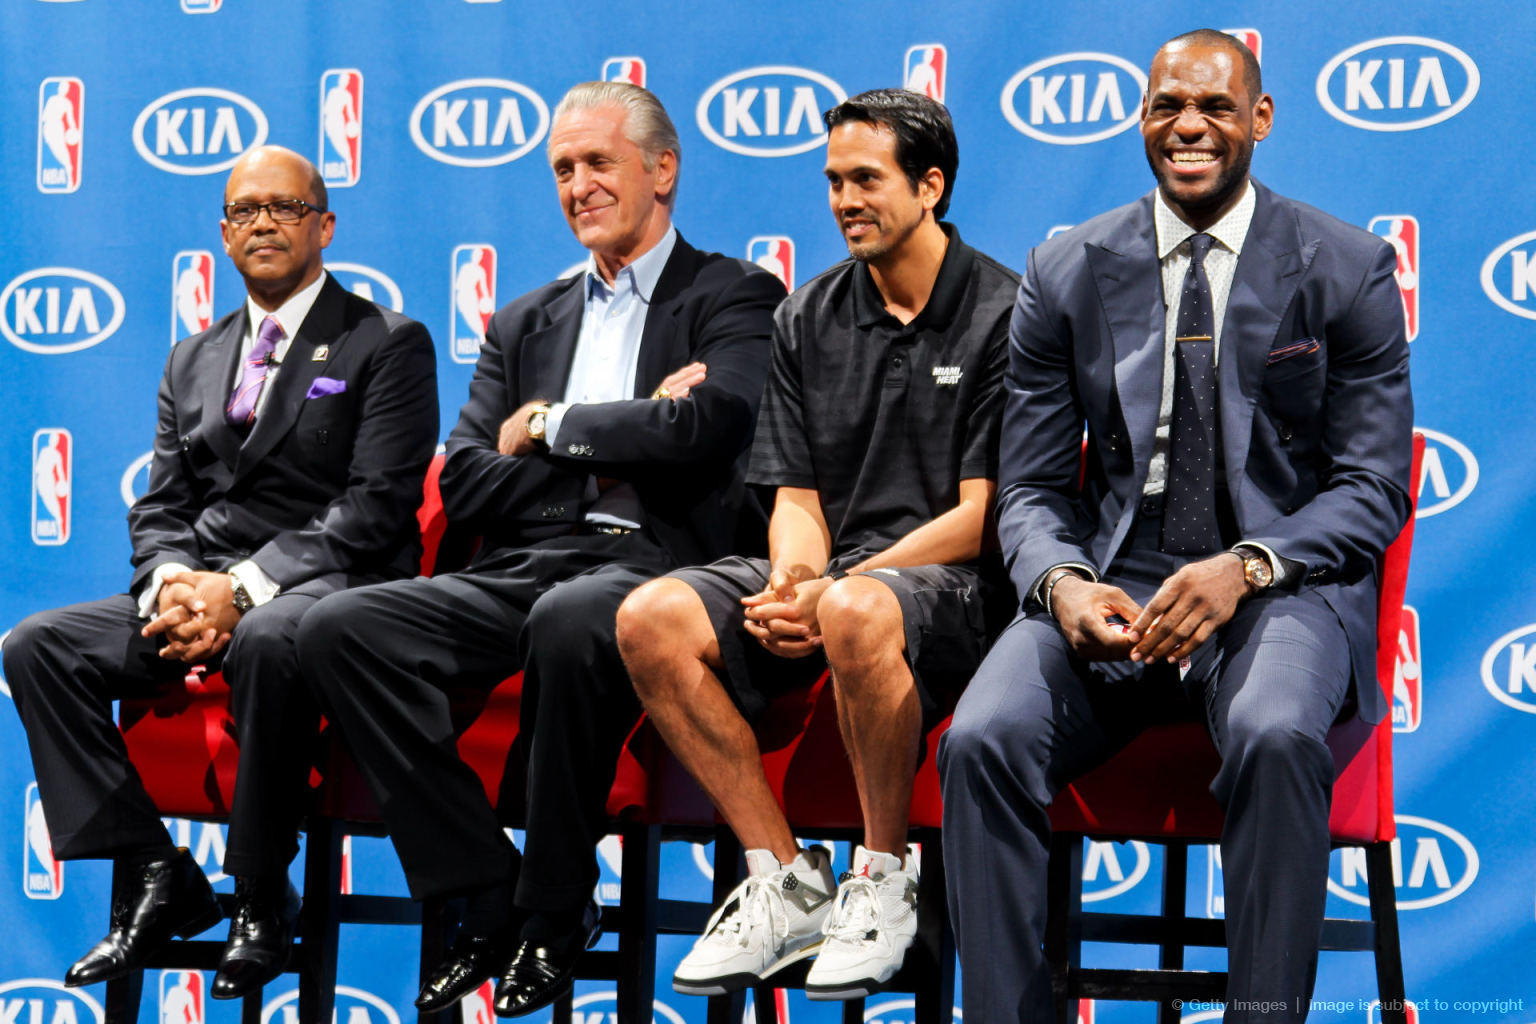 4de6a5f747bd0 Last Sunday s MVP Award ceremony crowning LeBron James saw Heat head coach  Erik Spoelstra lace up a questionable pair of White Cement Grey Jordan 4s.